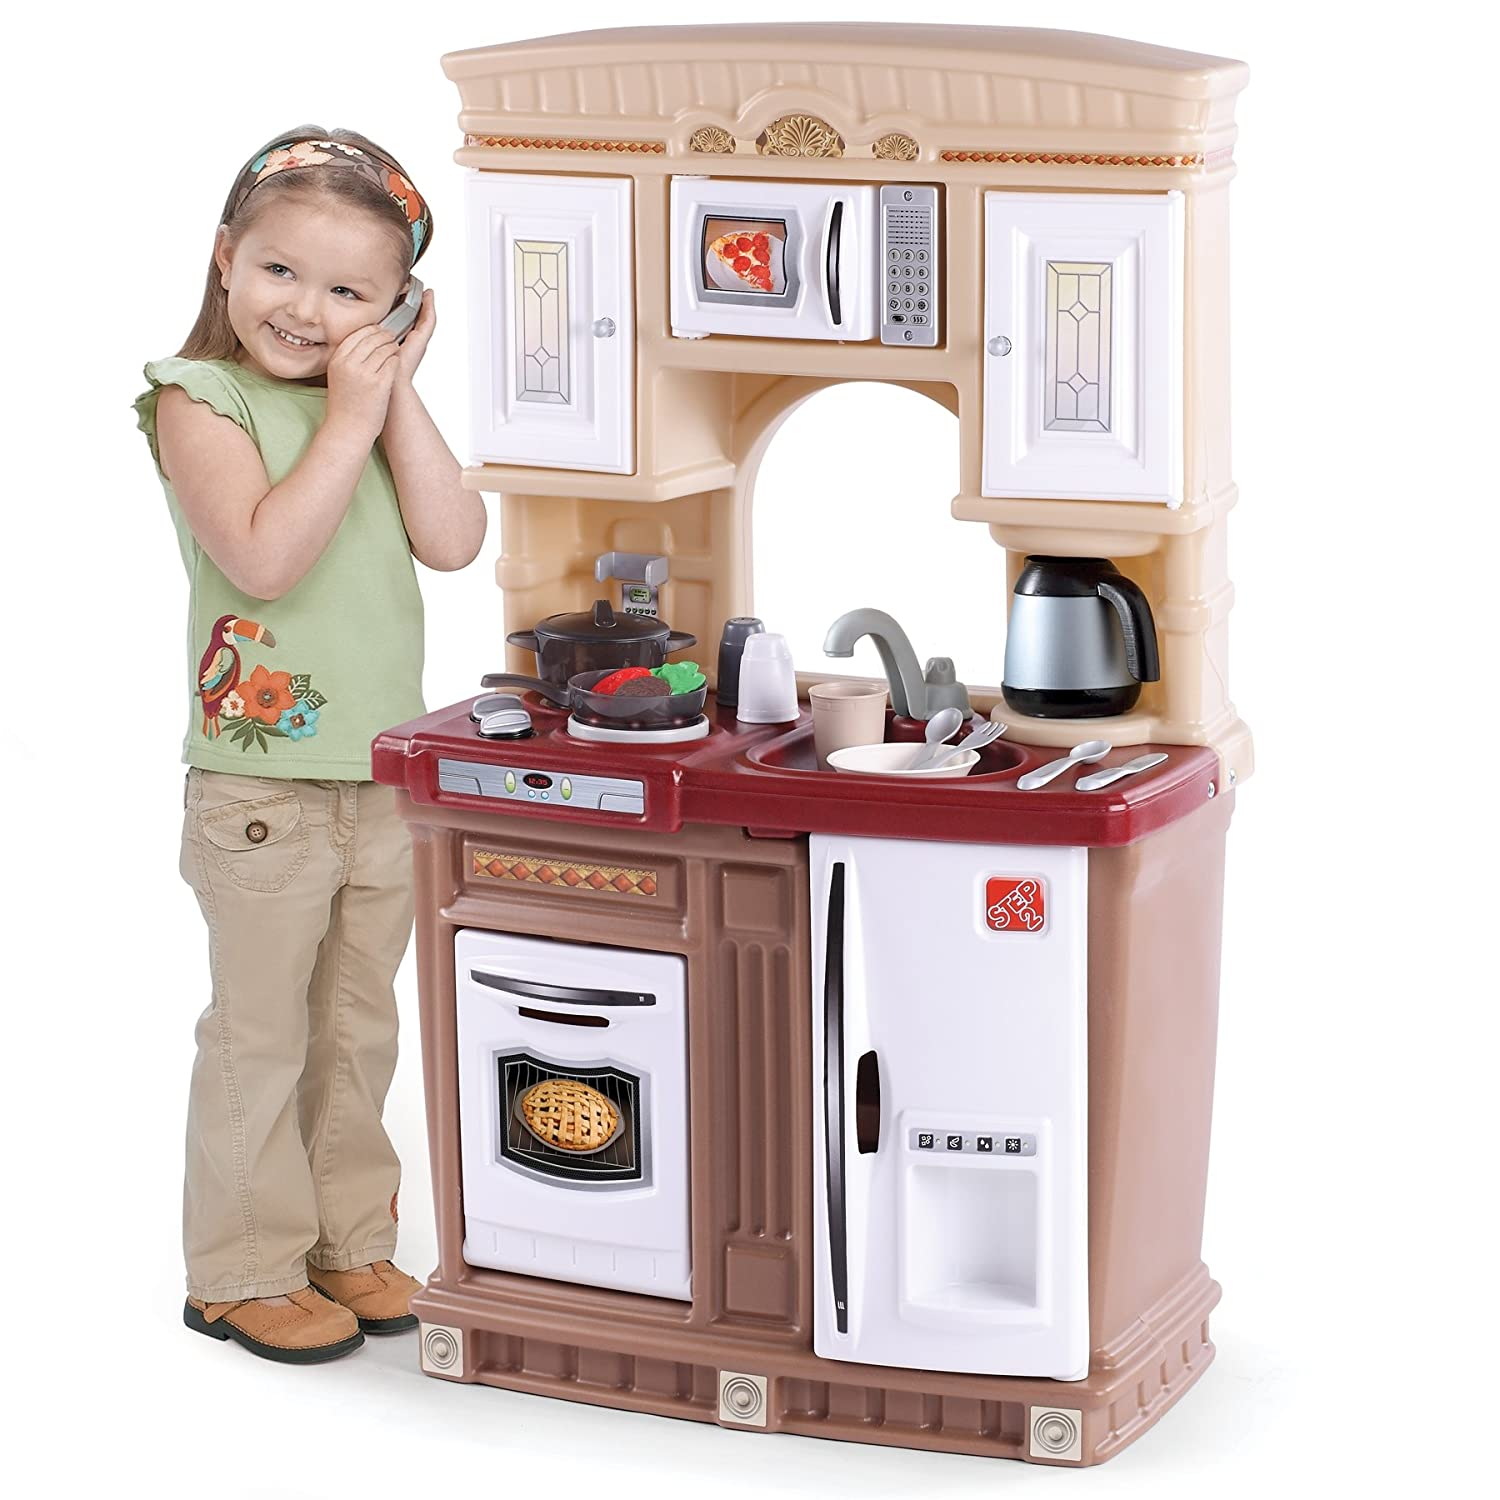 Toy Kitchen Set For Toddlers. childs kitchen set minimalist kid ...